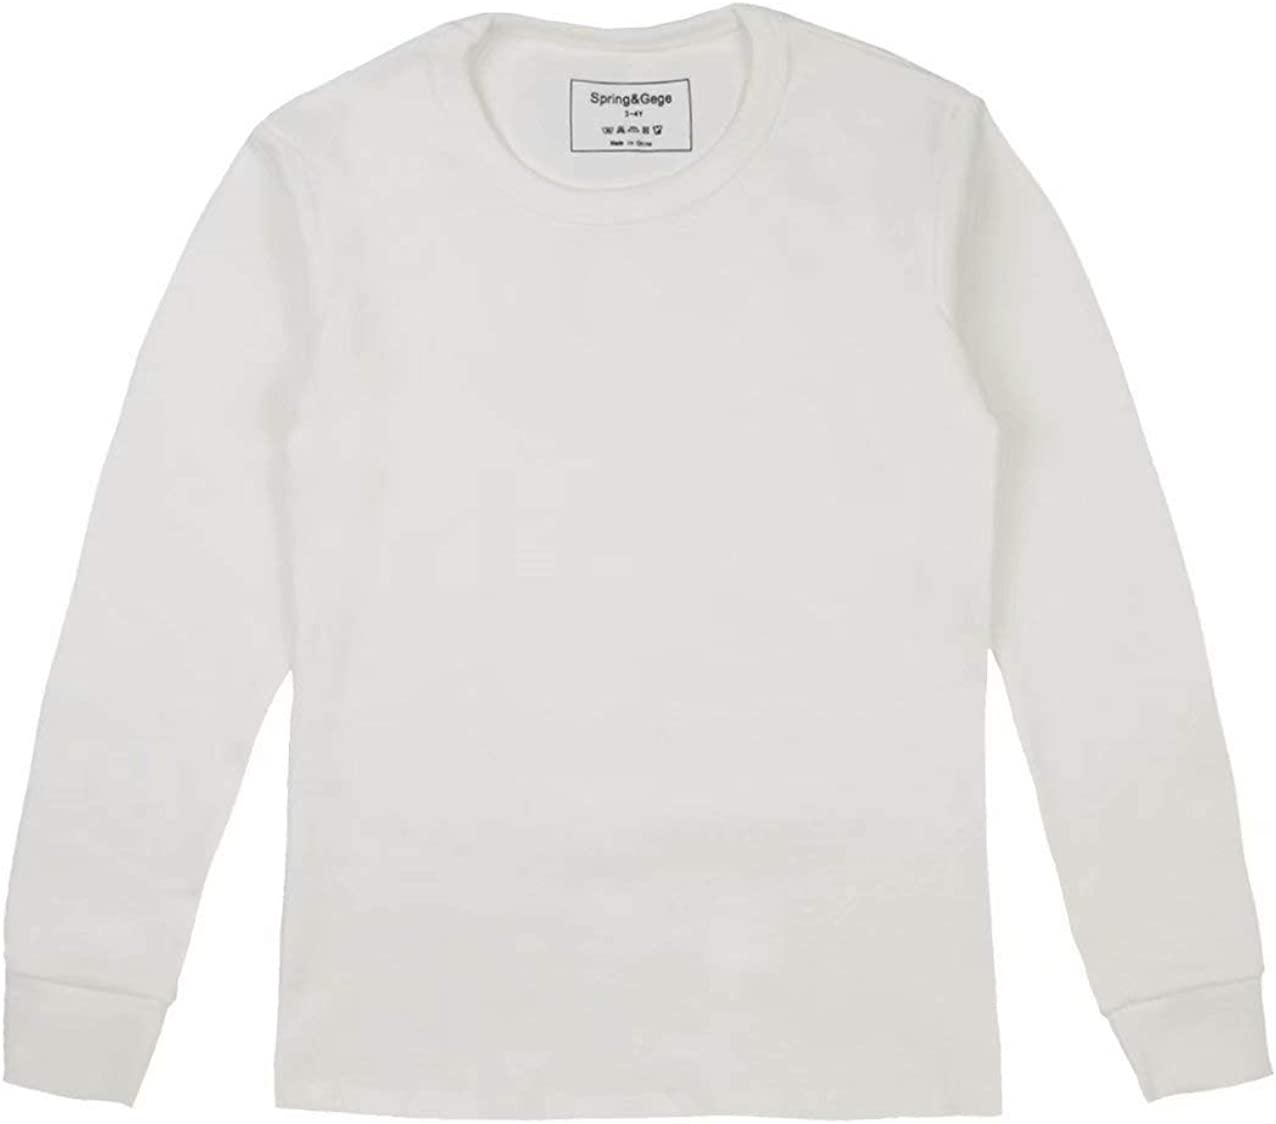 Spring/&Gege Girls Long Sleeve Cotton T-Shirts Kids Solid Crew Neck Tees